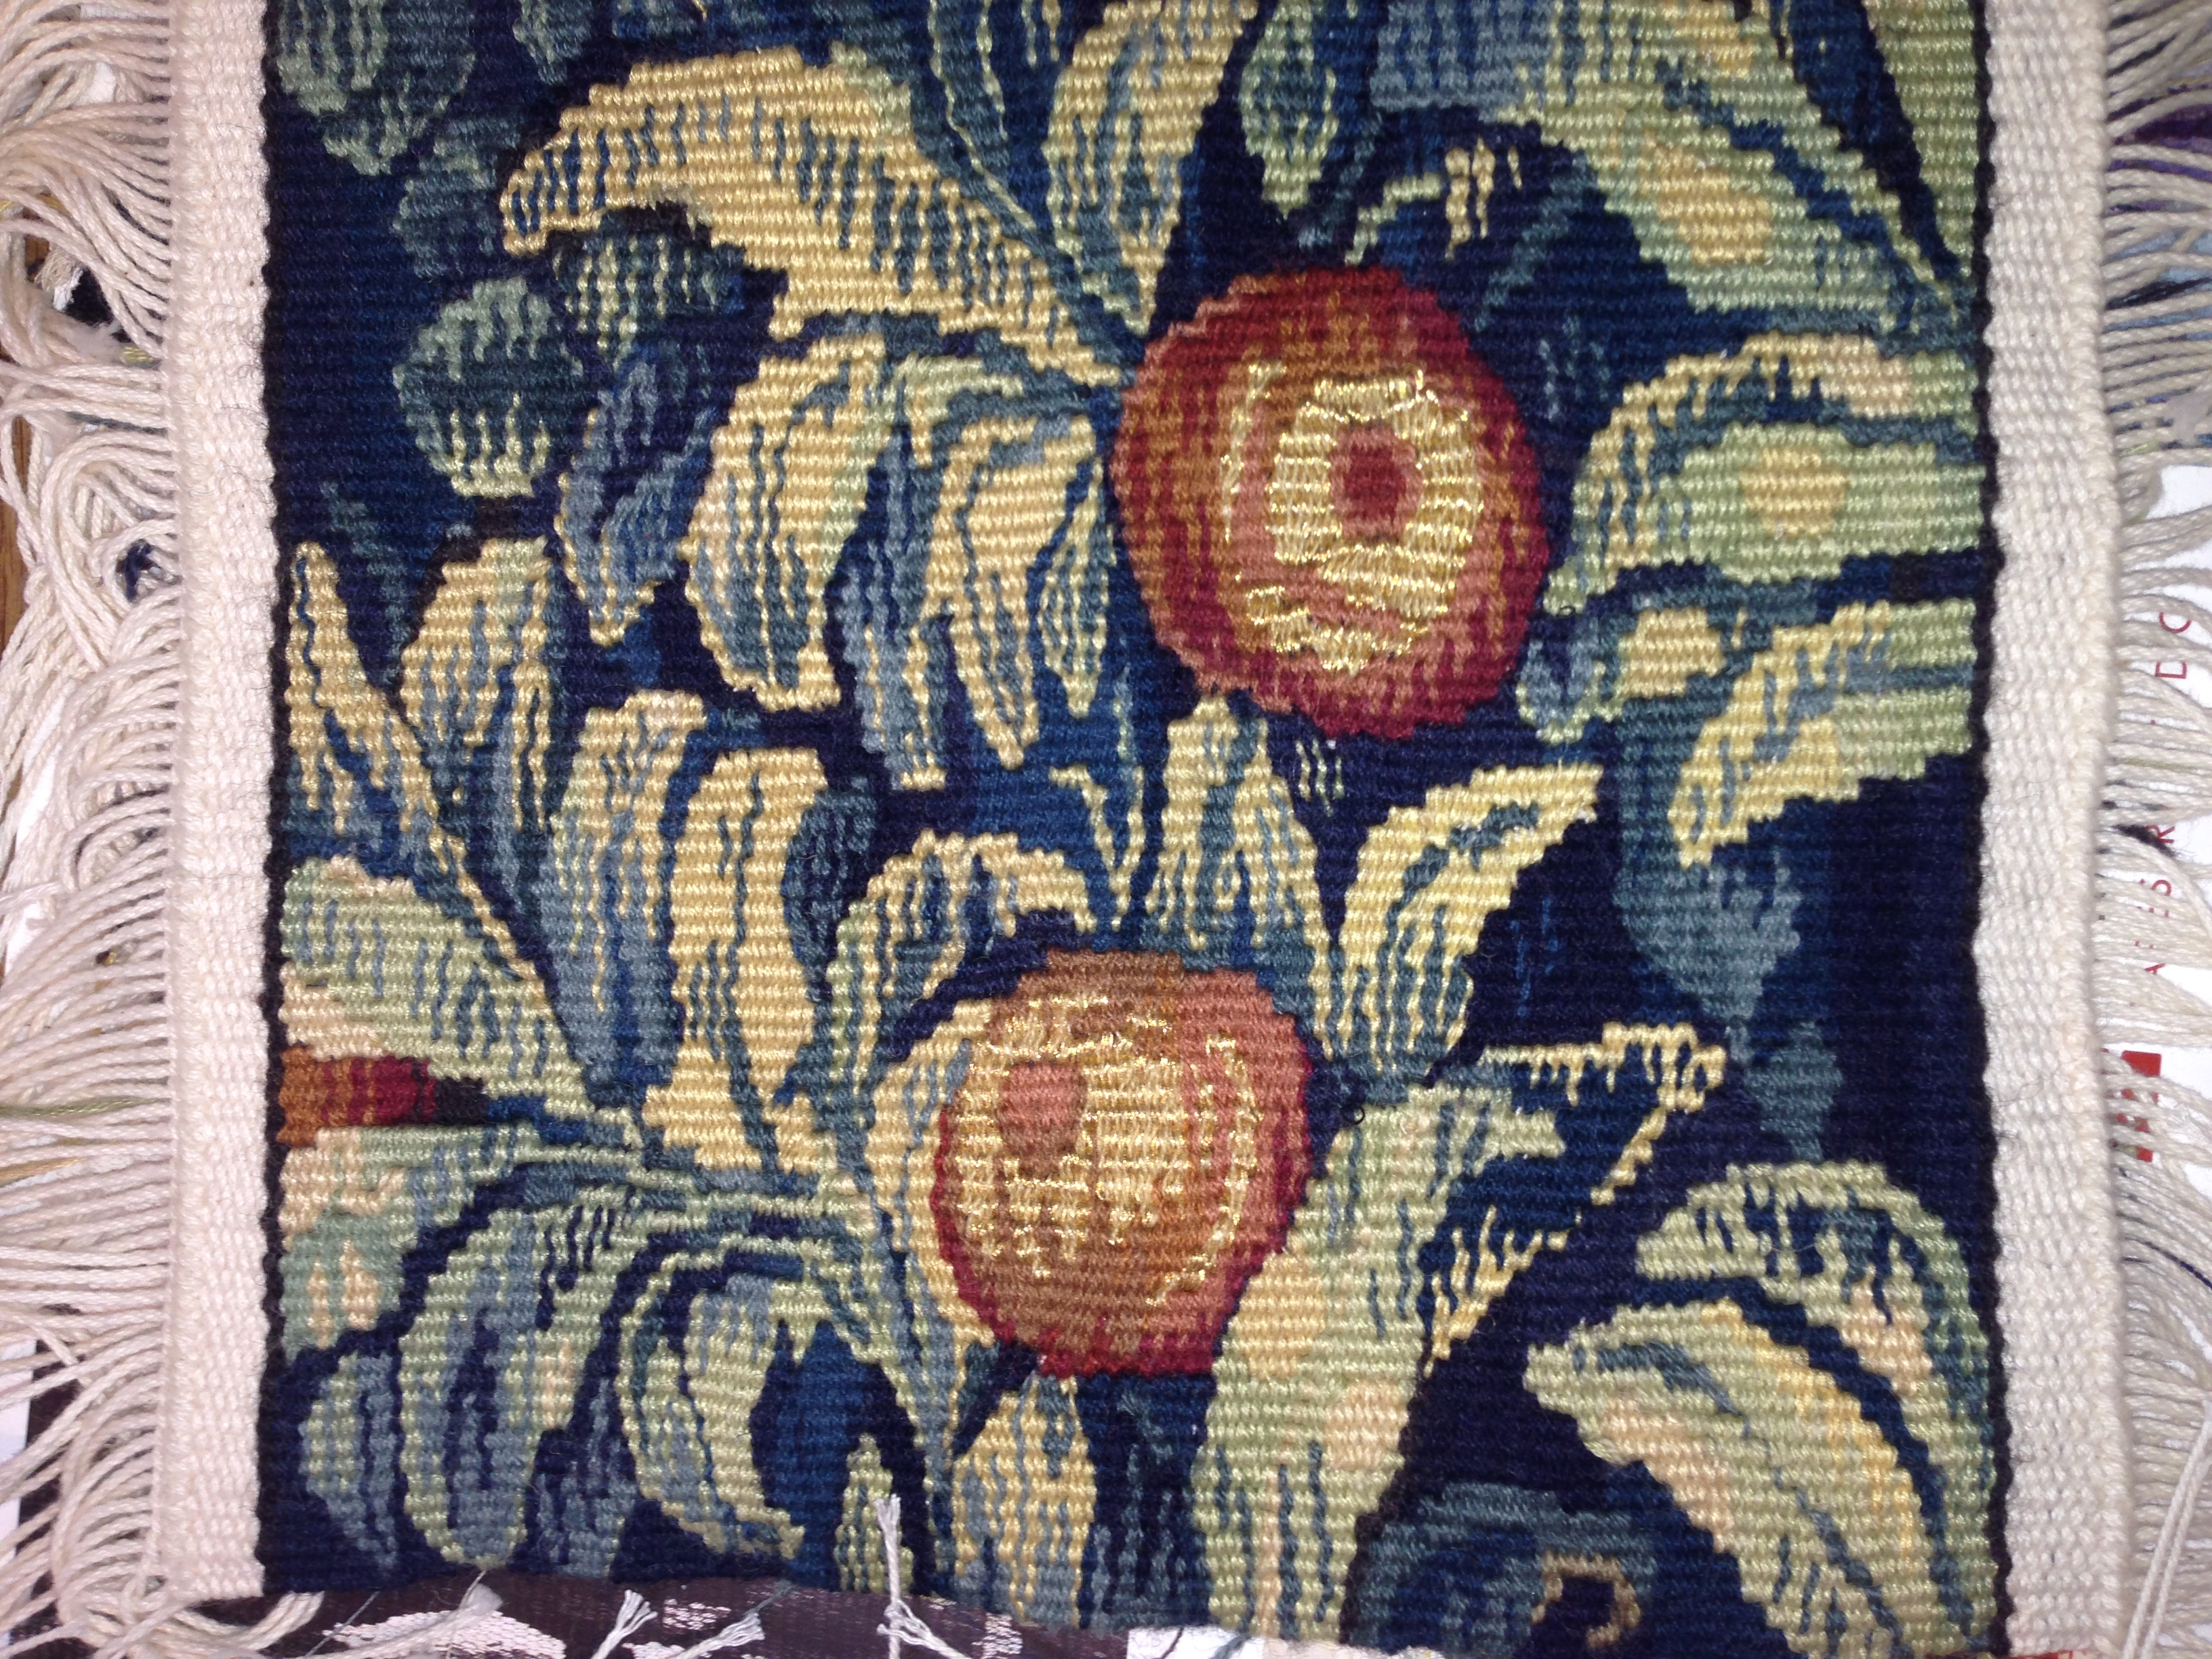 Here is the design seen from the right side of the work.  This is not part of a Unicorn tapestry, but a sample woven by a weaver doing a modern scene.  West Dean College is doing astounding work in this field, and the samples were inspirational.